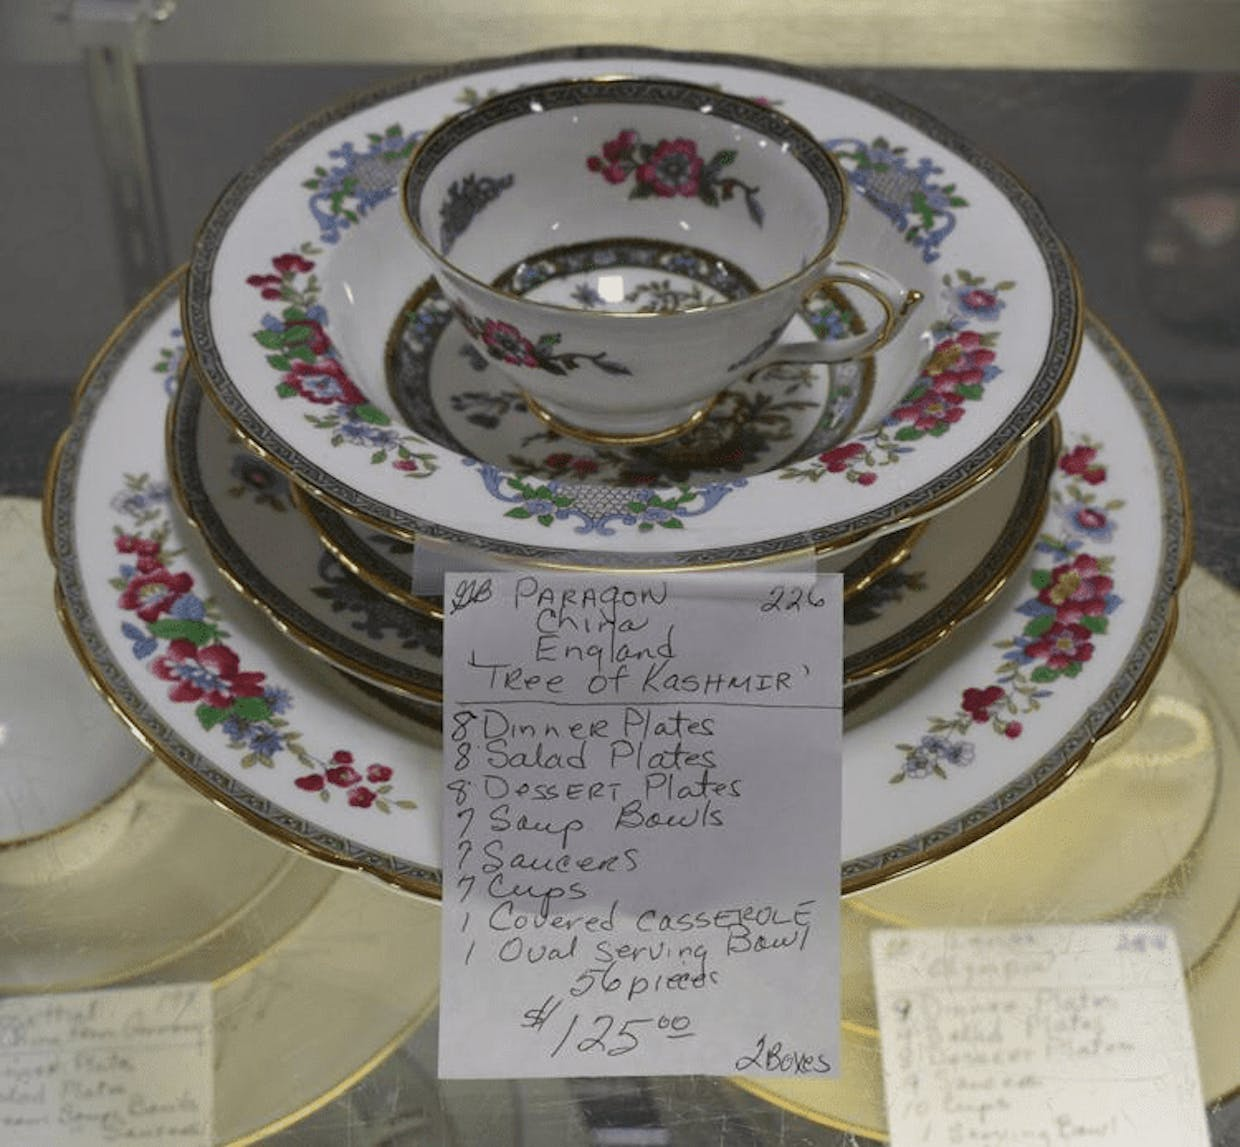 A set of Paragon China at the White Elephant thrift store